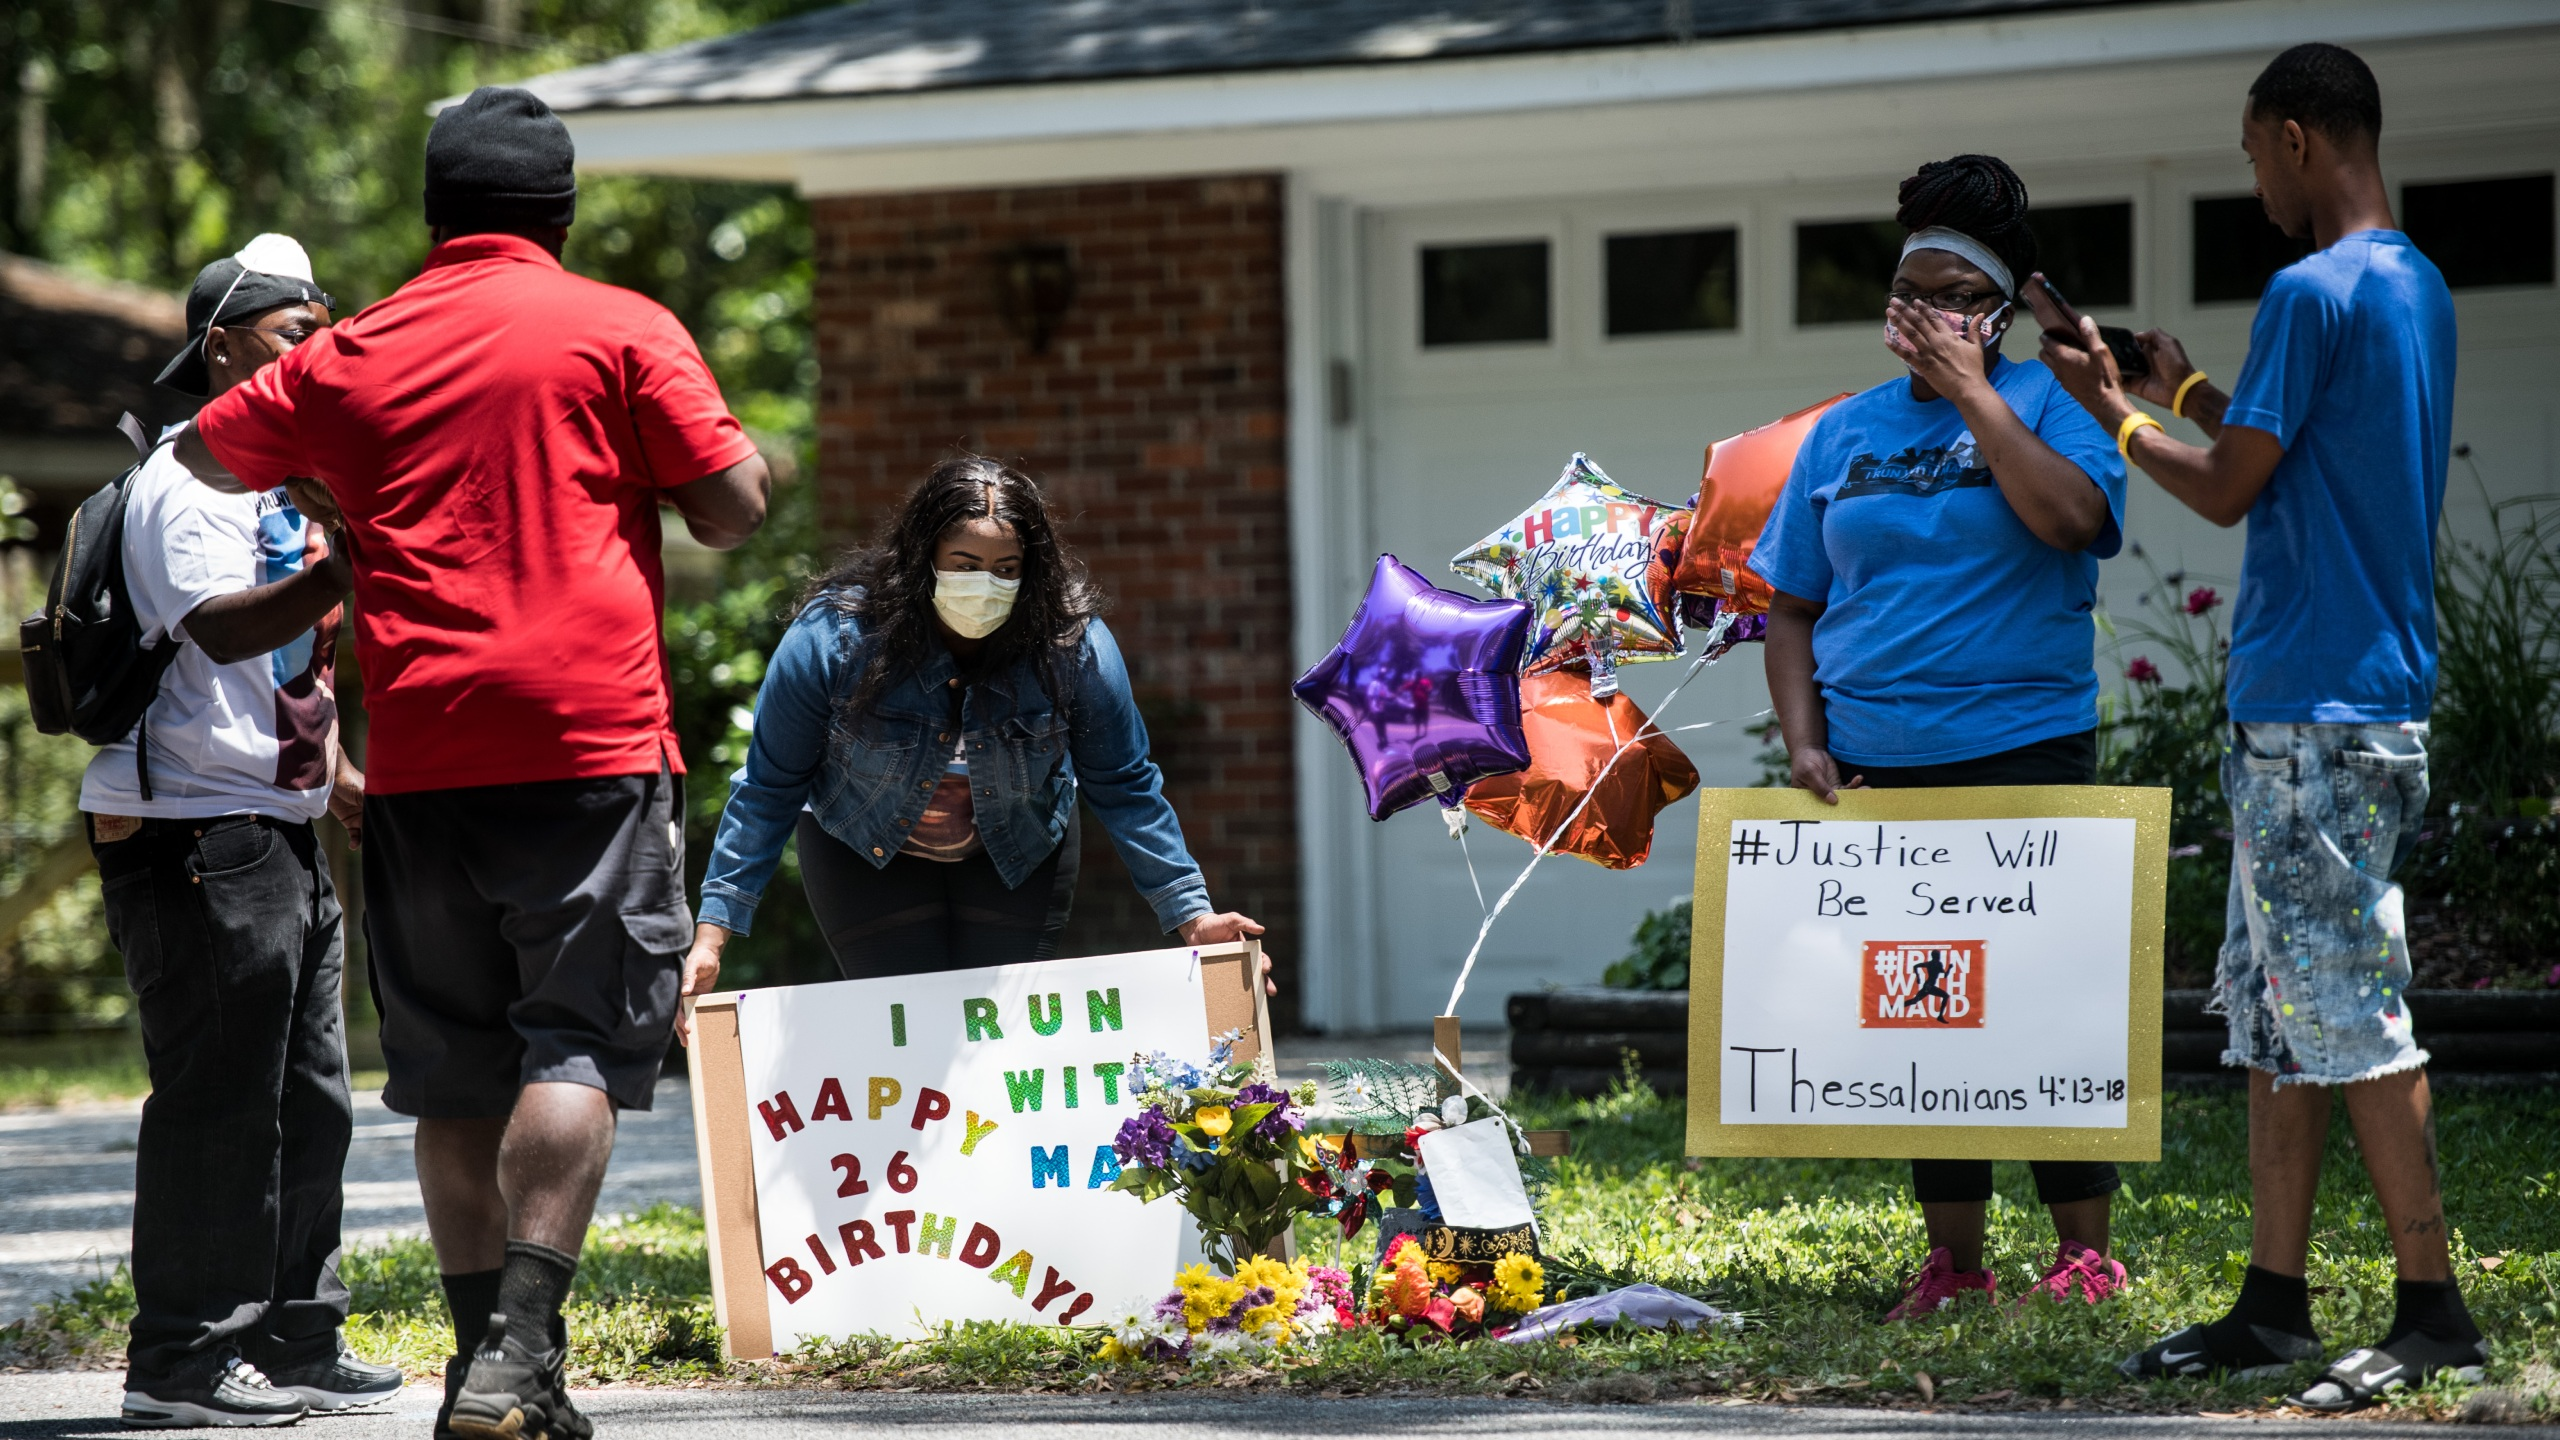 Demonstrators hold signs at a memorial for Ahmaud Arbery on May 8, 2020, near where he was shot and killed in Brunswick, Georgia. (Credit: Sean Rayford / Getty Images)